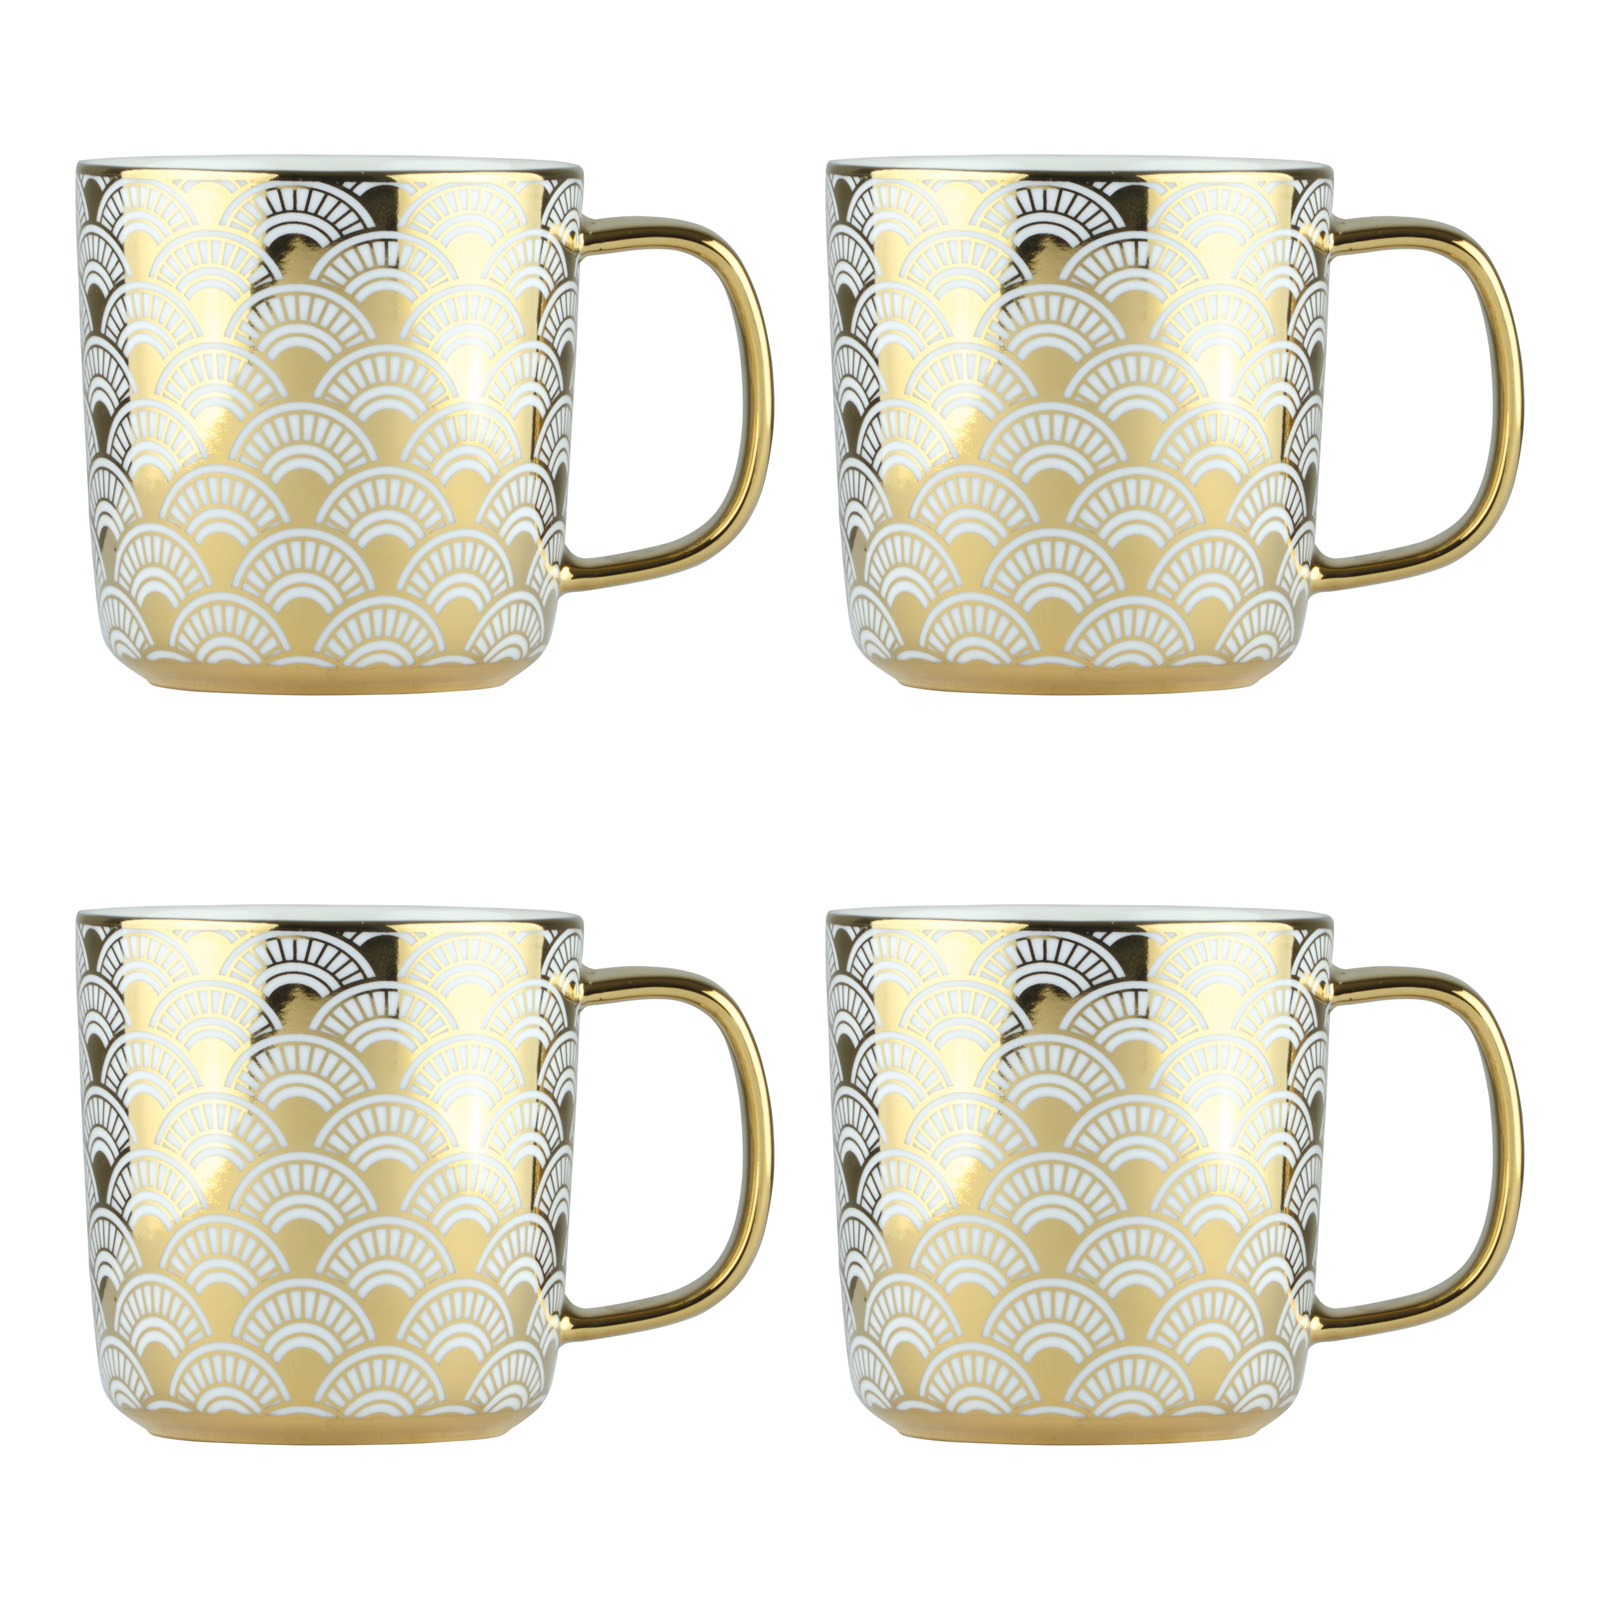 Set of 4 Fan Gold Mugs